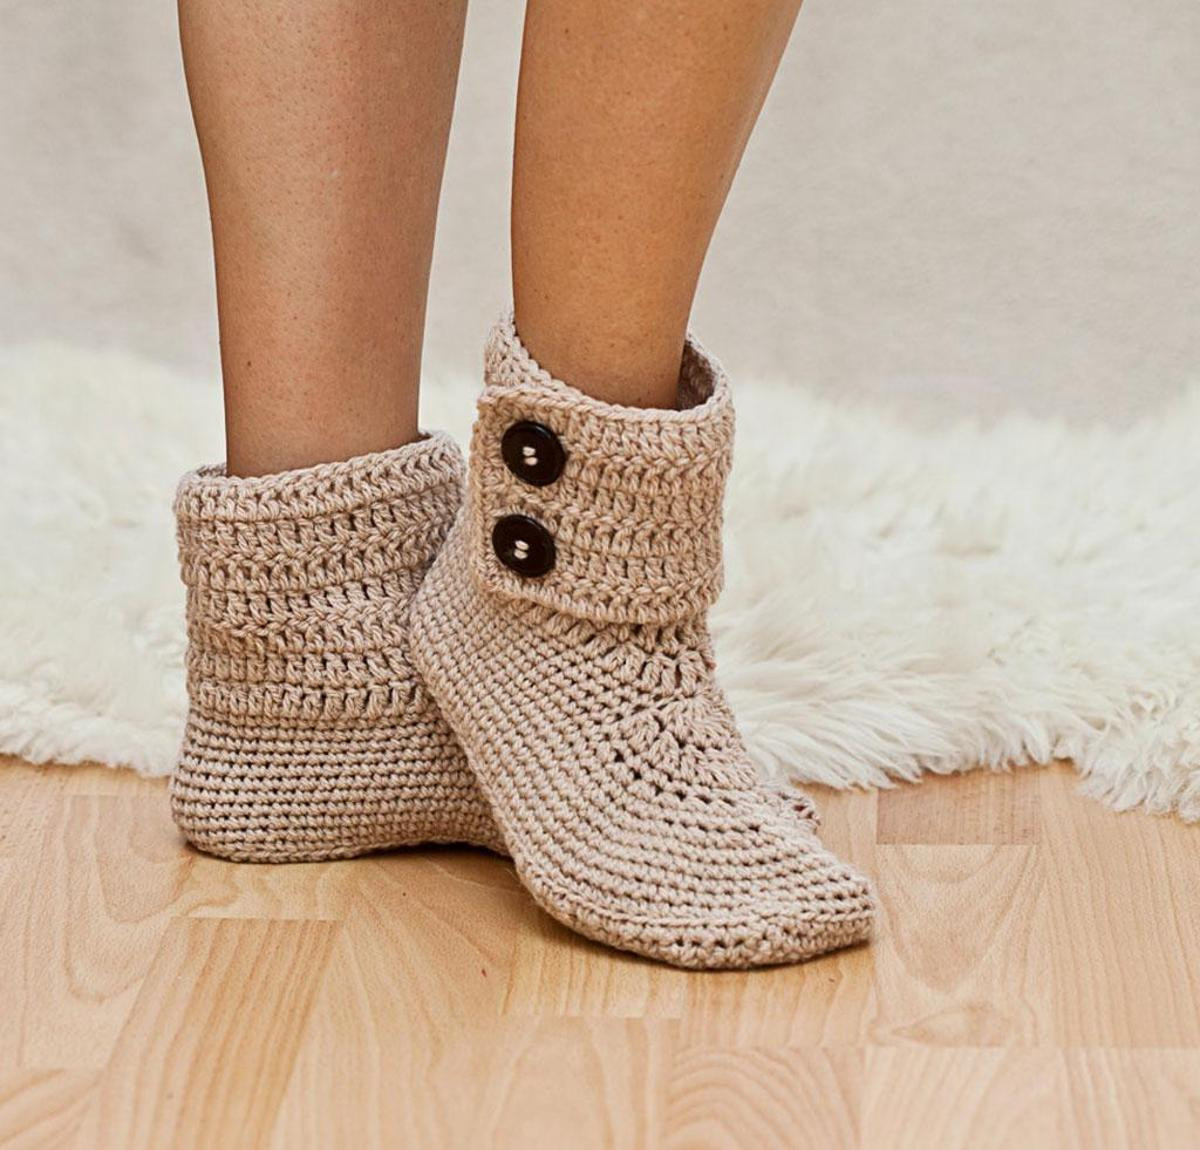 Crochet Boots Pattern Free Luxury La S button Ankle Boot Slippers Crochet Kit Of Amazing 44 Models Crochet Boots Pattern Free